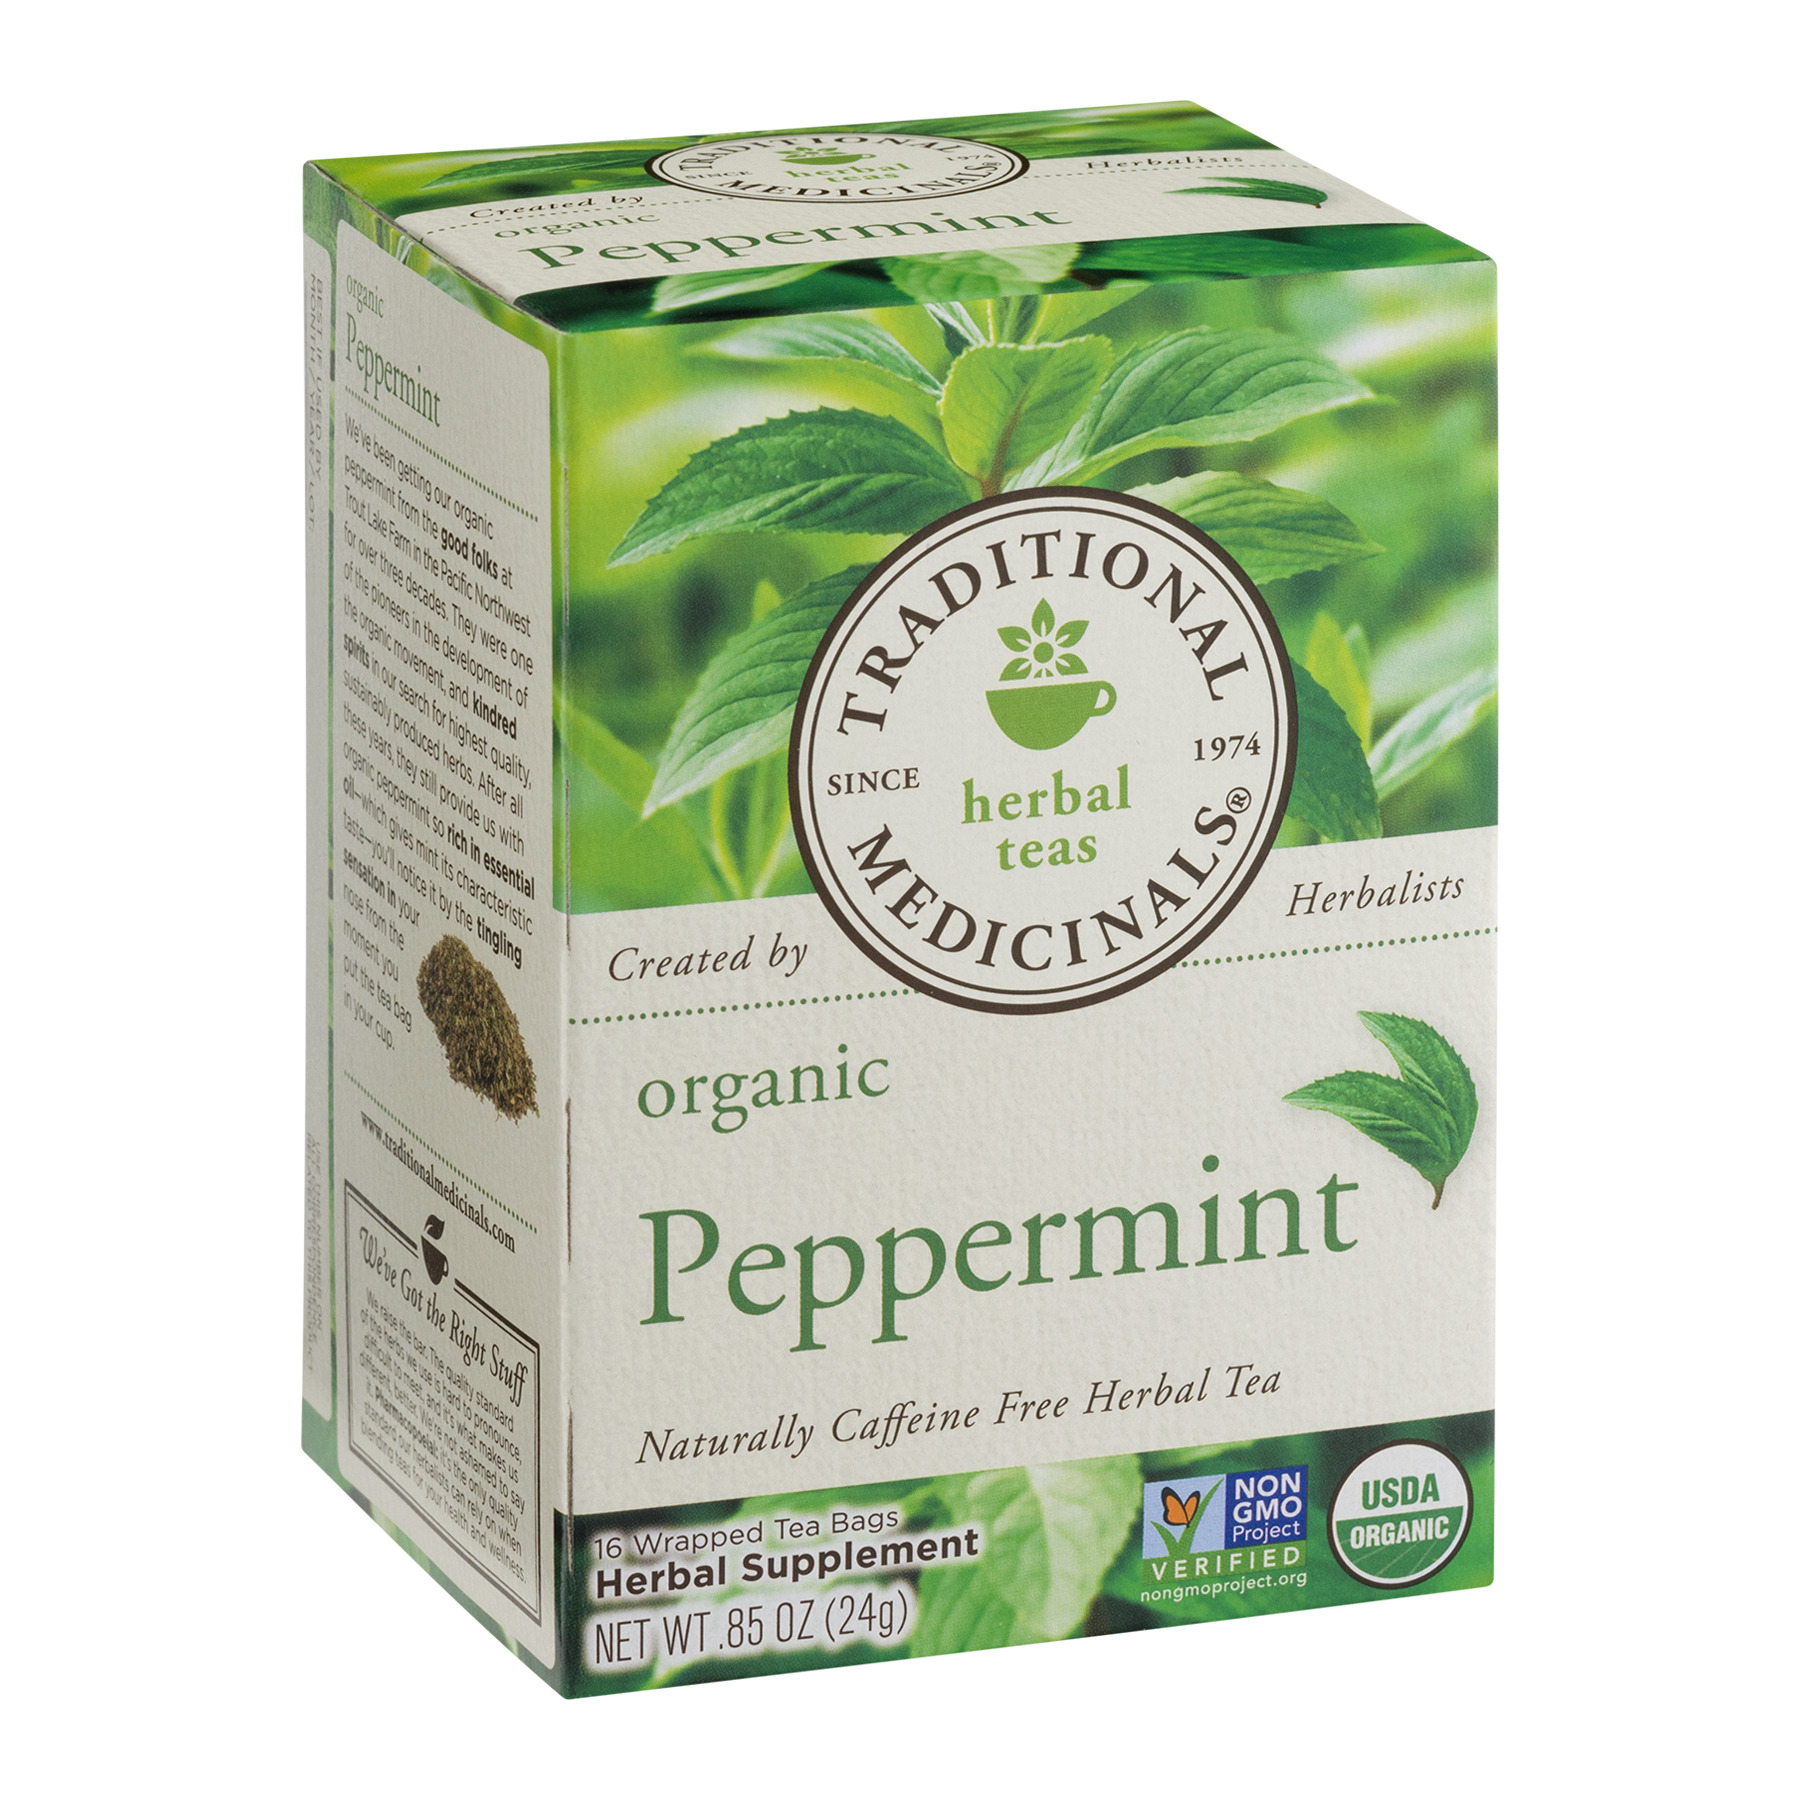 TRADITIONAL MEDICINAL PEPPERMINT ORGANIC